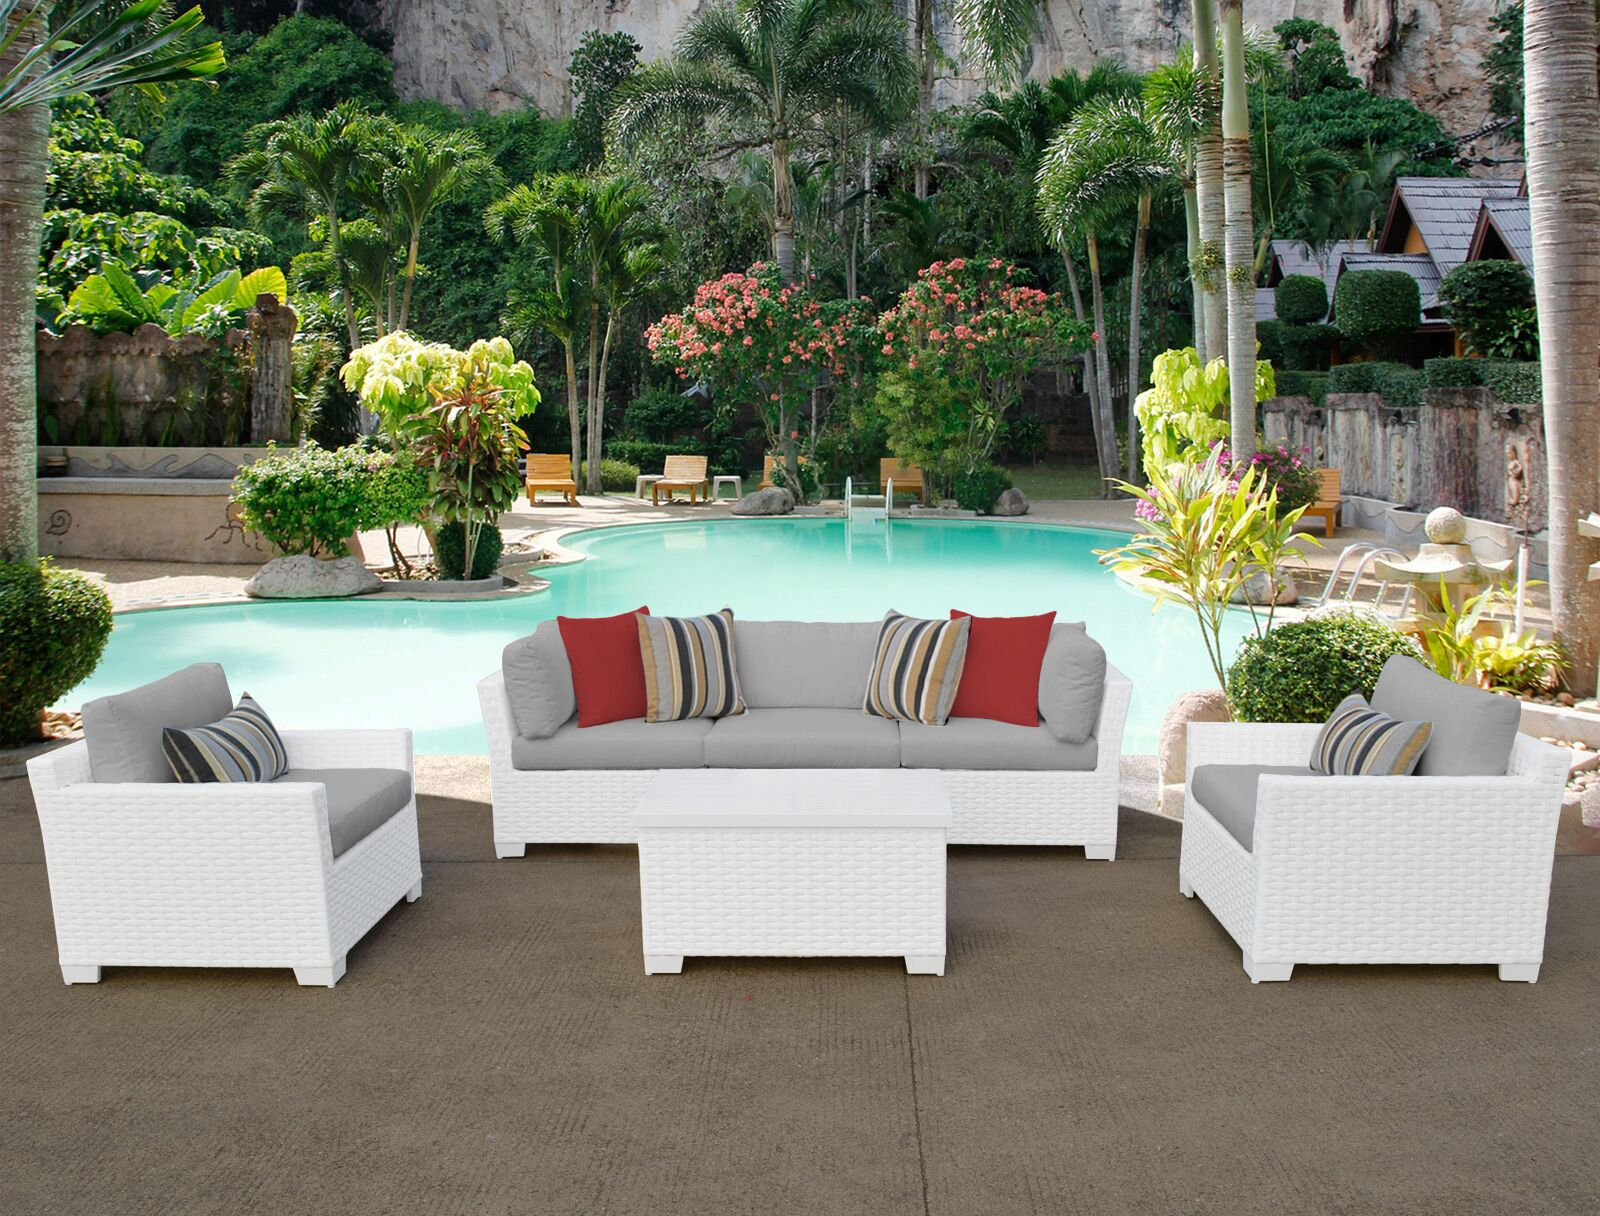 Monaco 6 Piece Sectional Set with Cushions Cushion Color (Fabric): Gray